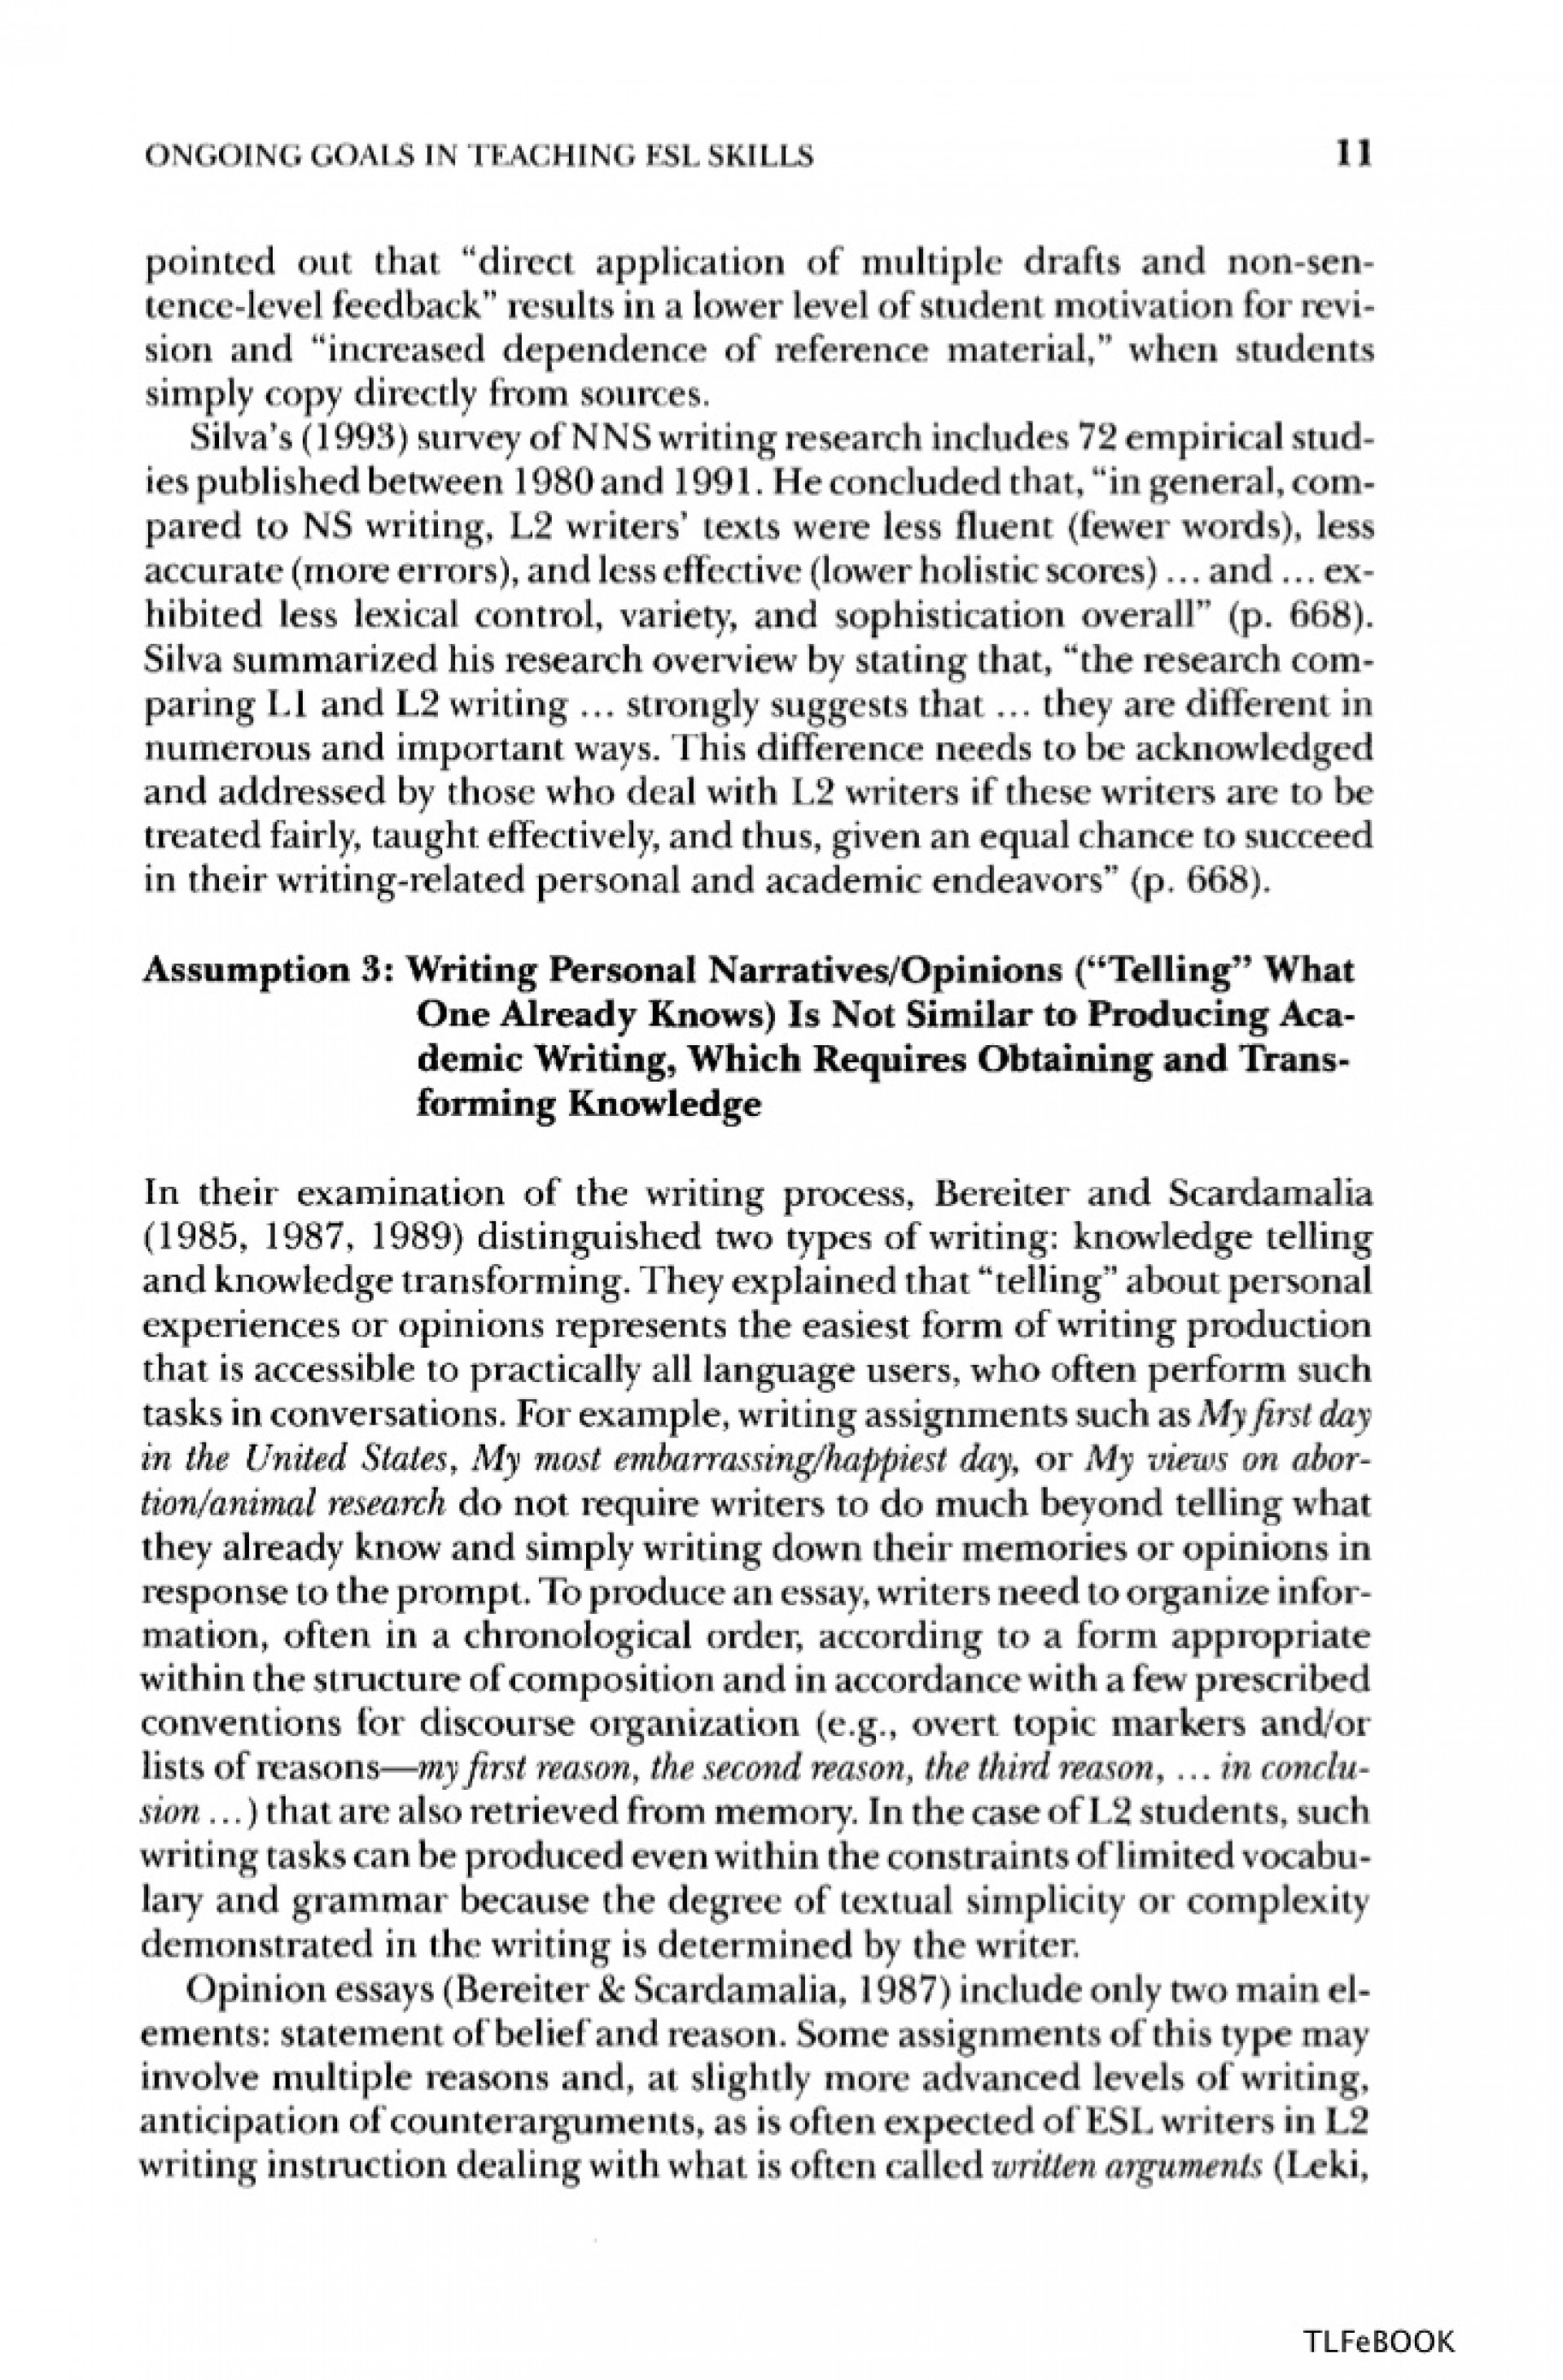 010 Essay Example English Teaching Academic Esl Writing Practical Techniques In Vocabulary And Grammar Singular Family Narrative Ideas Conclusion Life Topics 1920